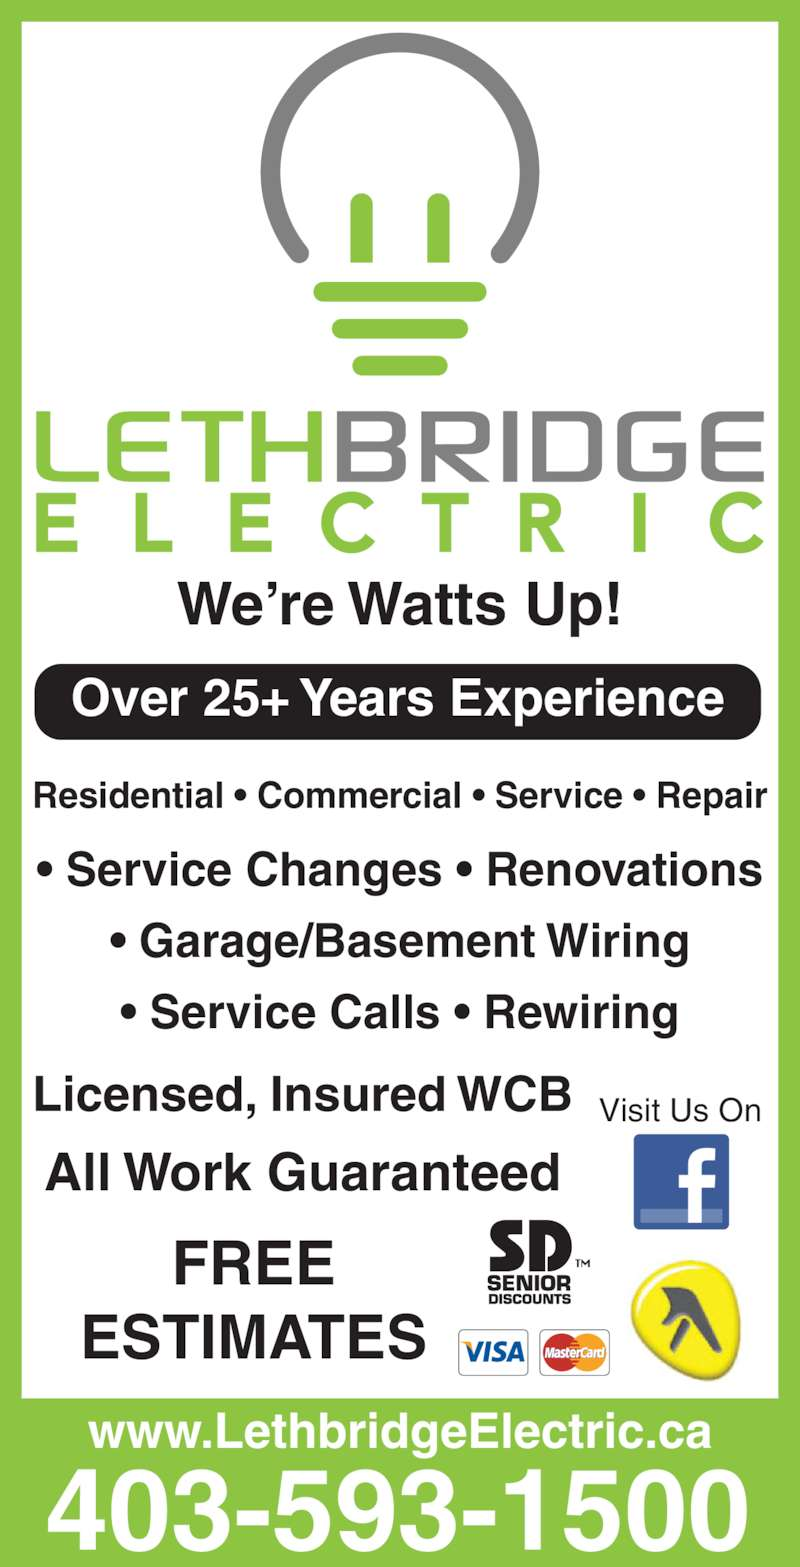 Lethbridge Electric Ltd (403-593-1500) - Display Ad - ? Service Calls ? Rewiring Visit Us On 403-593-1500 www.LethbridgeElectric.ca Over 25+ Years Experience Residential ? Commercial ? Service ? Repair We?re Watts Up! Licensed, Insured WCB All Work Guaranteed FREE ESTIMATES ? Service Changes ? Renovations ? Garage/Basement Wiring